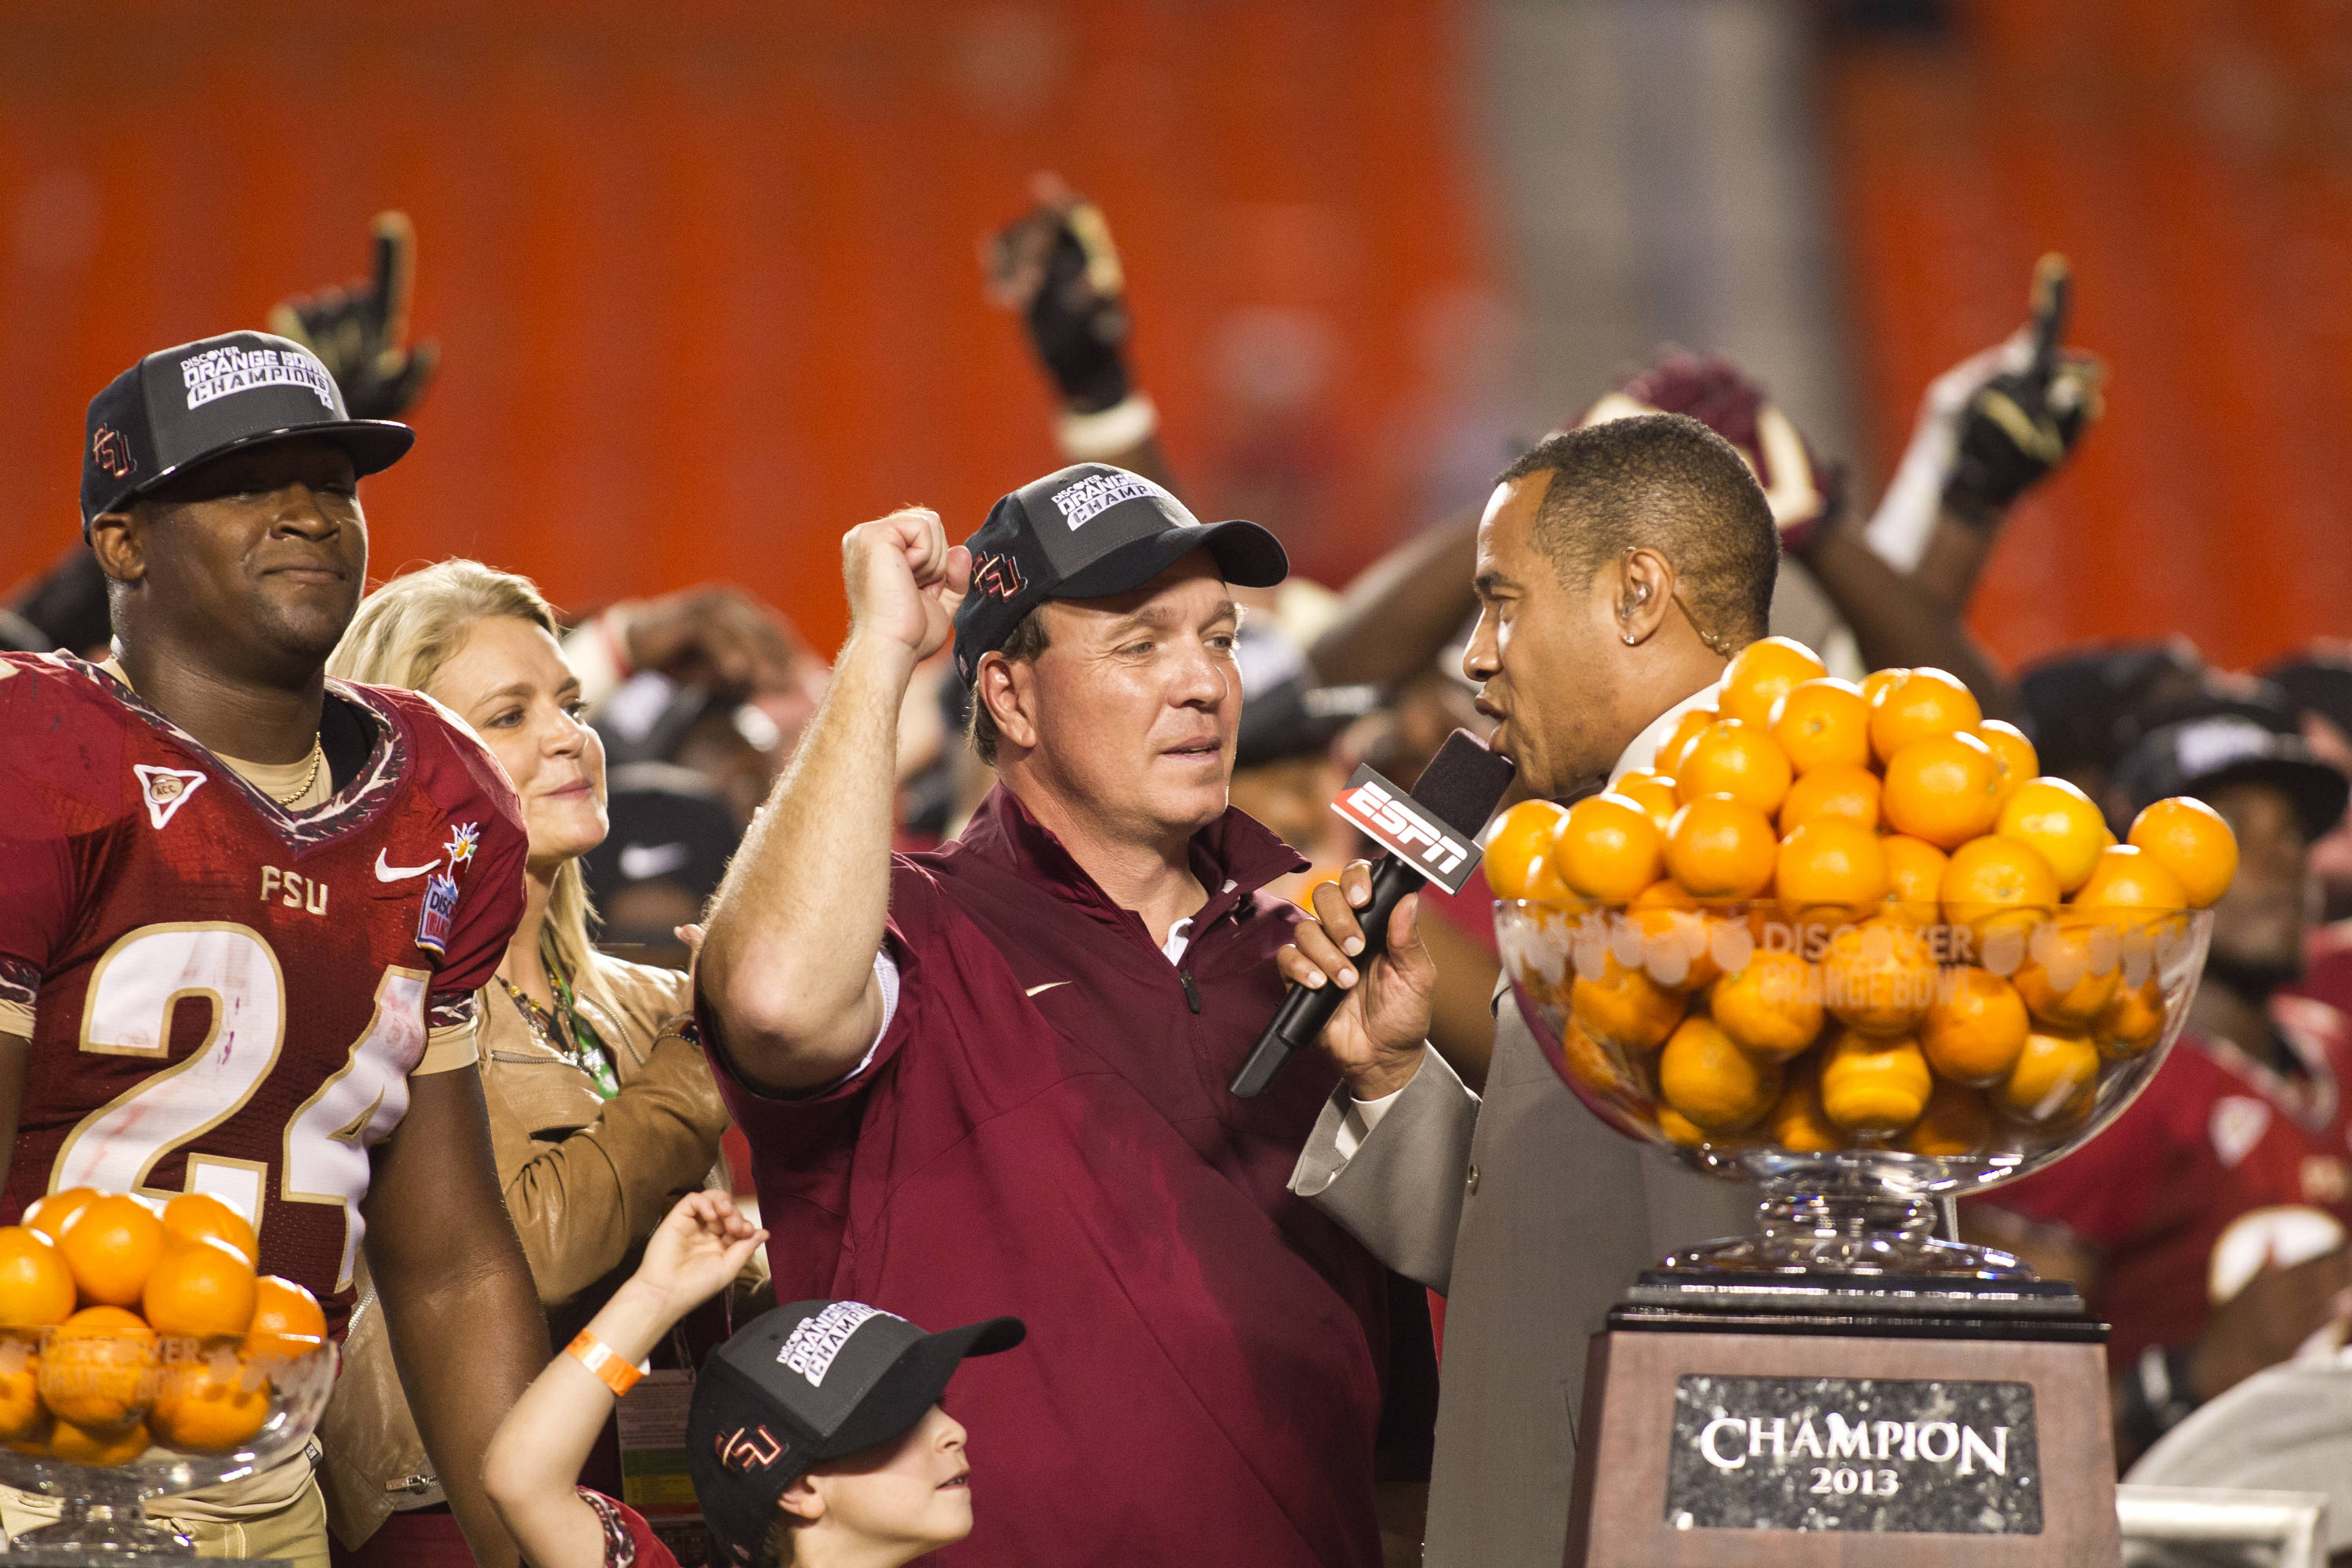 Head Coach Jimbo Fisher, MVP Lonnie Pryor, FSU vs No. Illinois, 01/01/13. (Photo by Steve Musco)